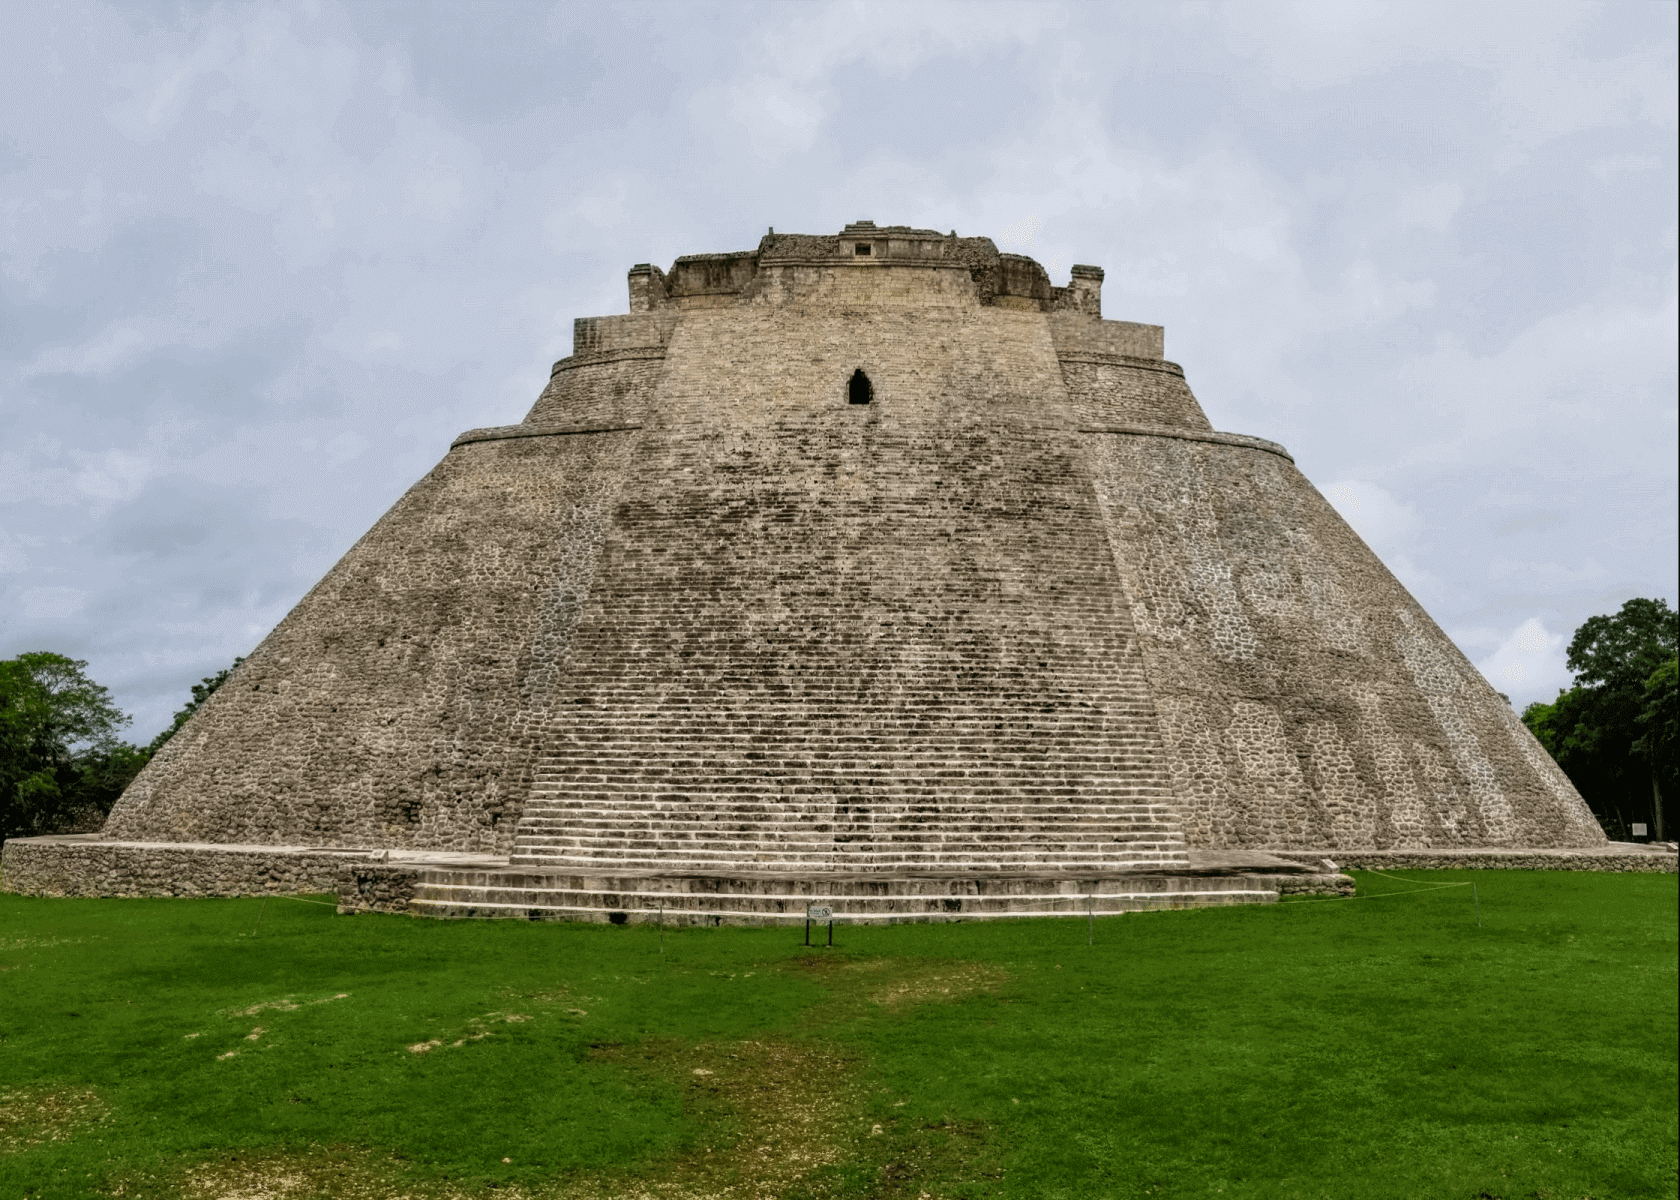 Mexican Standoff: The Ancient Ruins of Chichen Itza Versus Uxmal